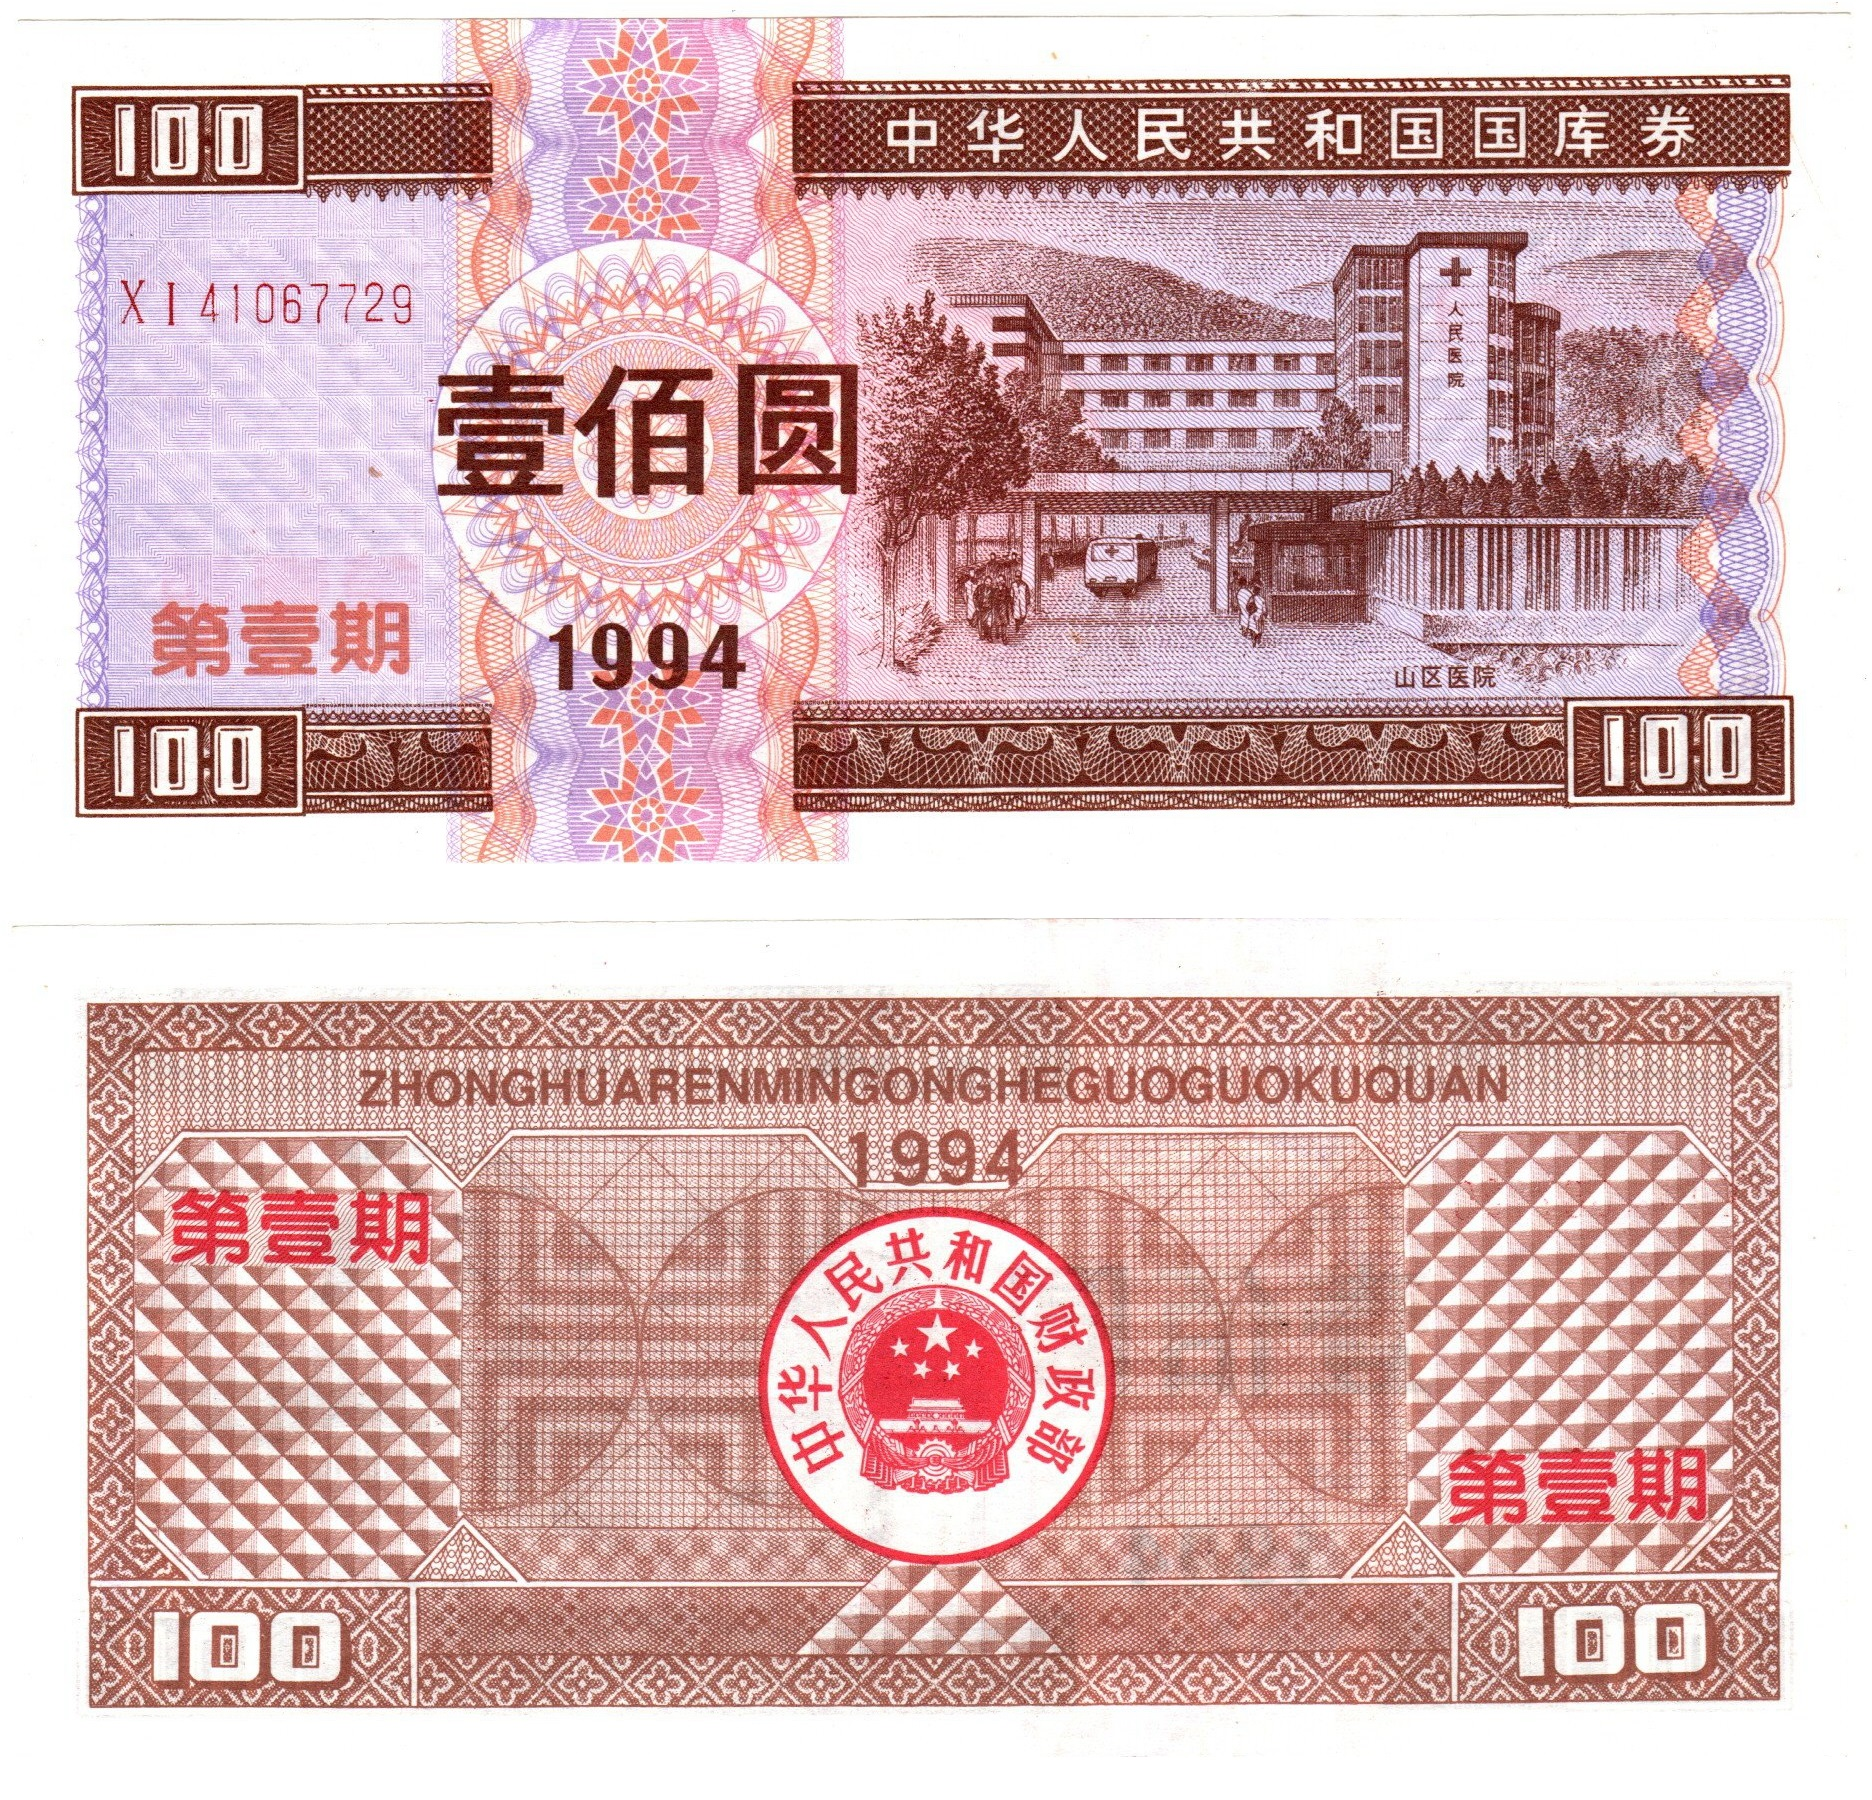 B7121, Treasury Bond of P.R.China, 100 Yuan (Dollars) 2 Years, 1994